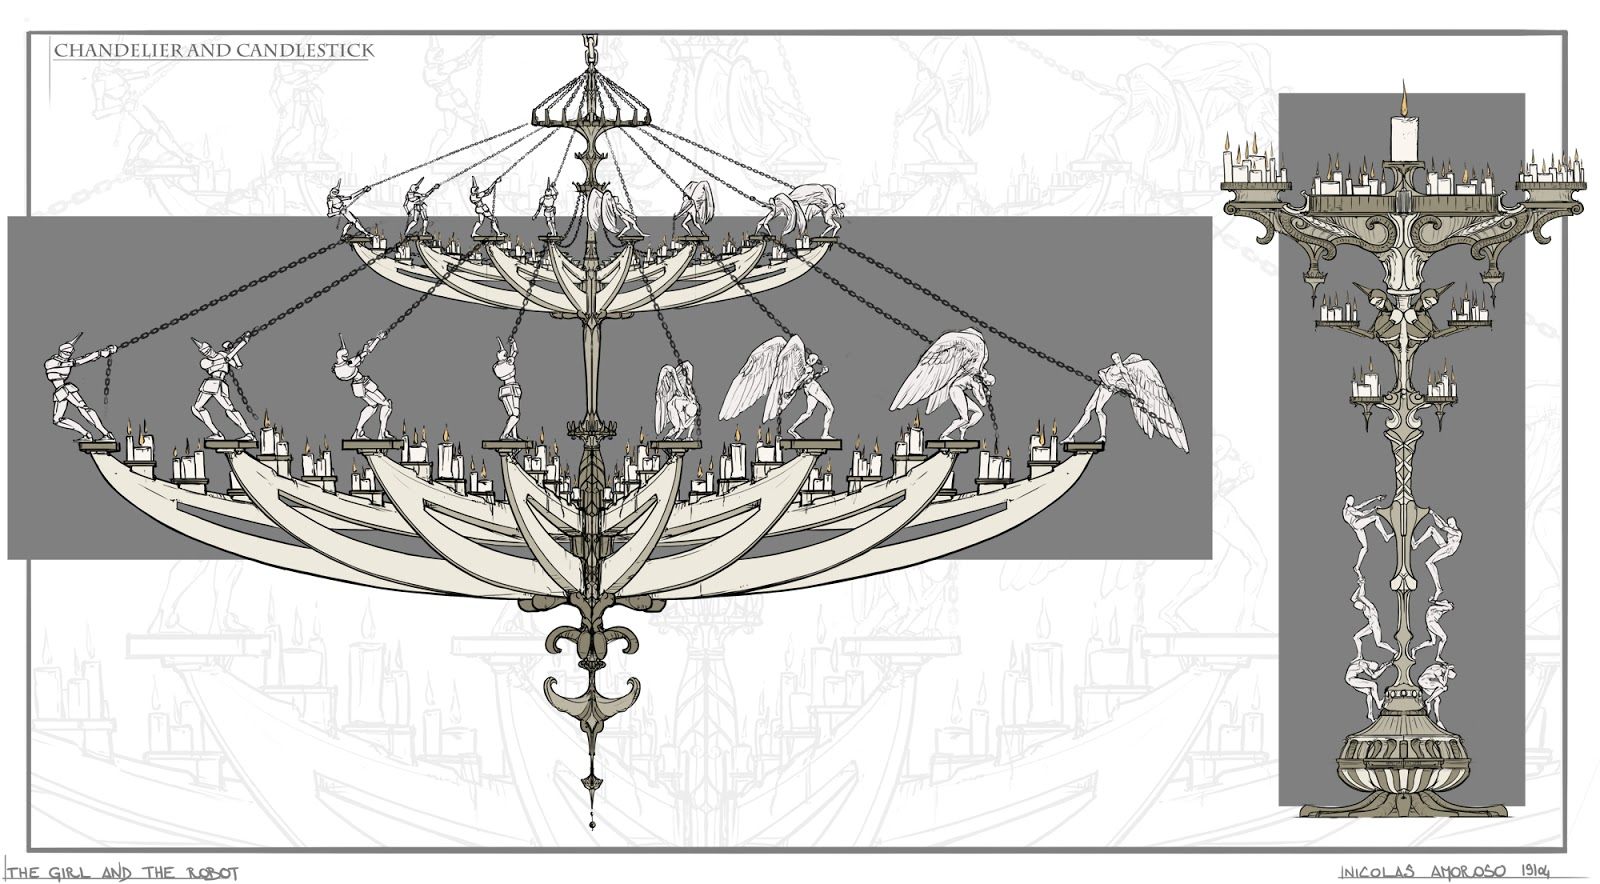 Les images de Niconoko. - Page 4 Chandelier_and_candlestick